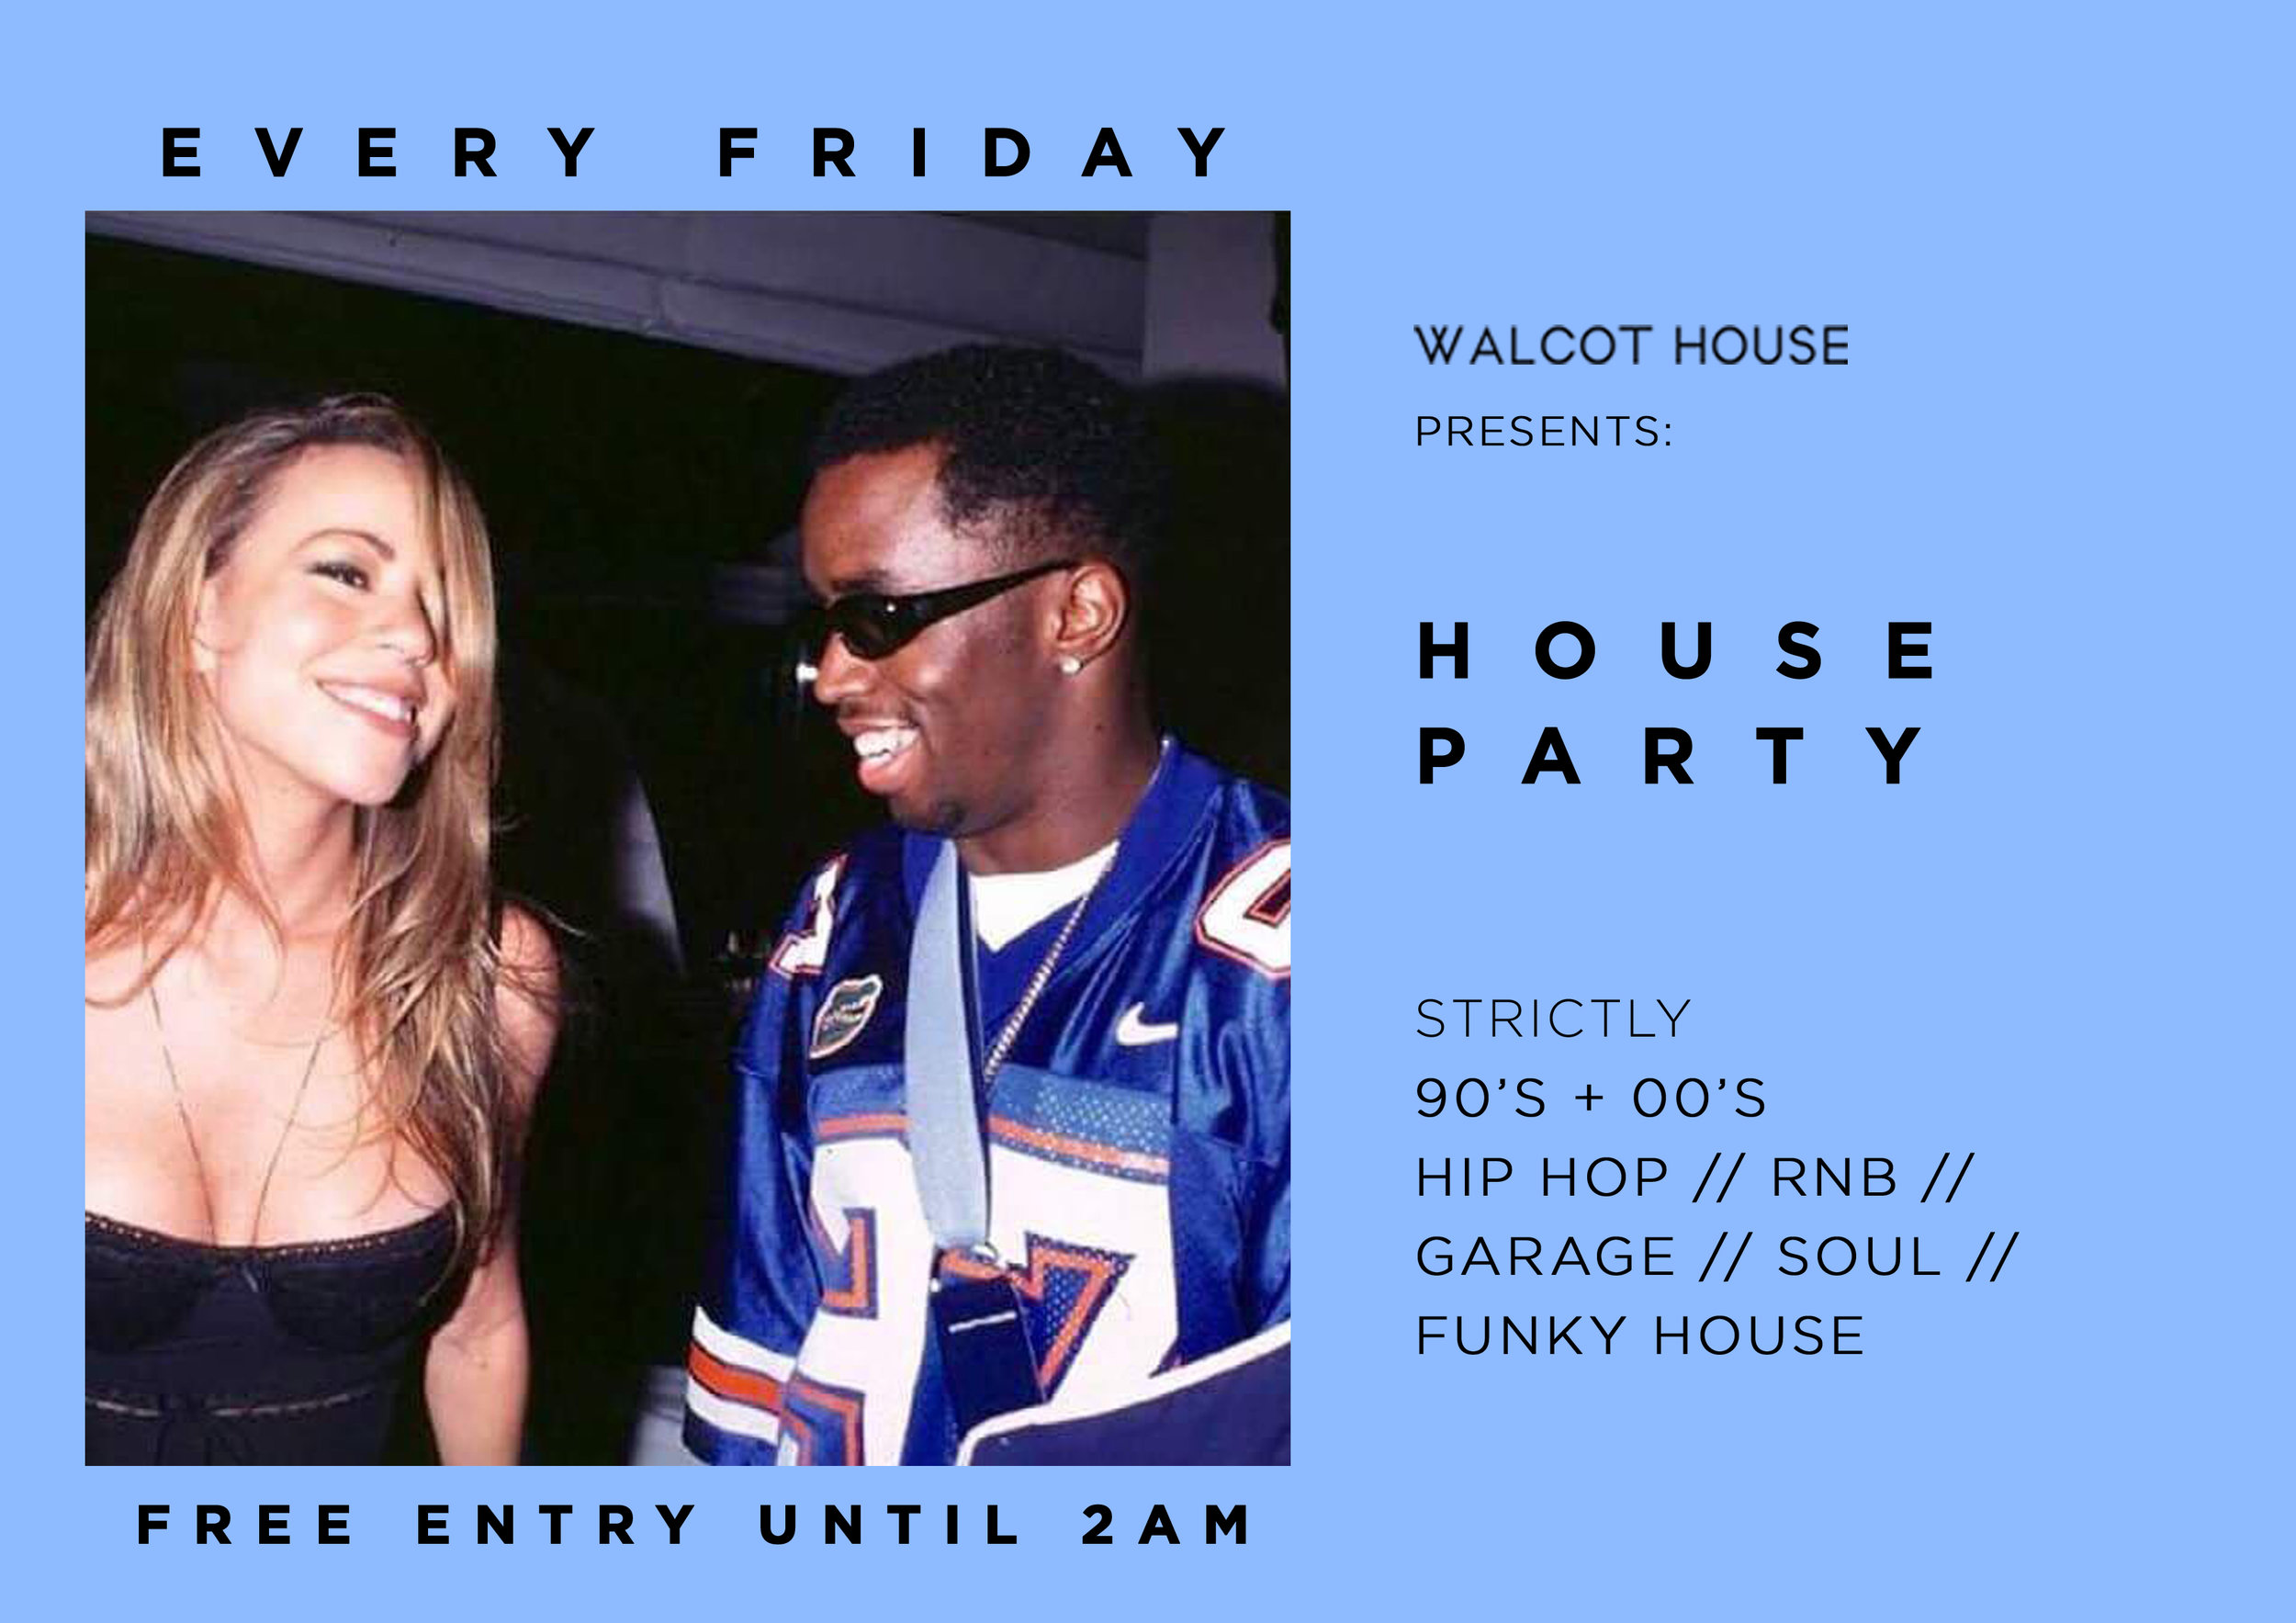 HOUSE PARTY FLYER JLO.jpg